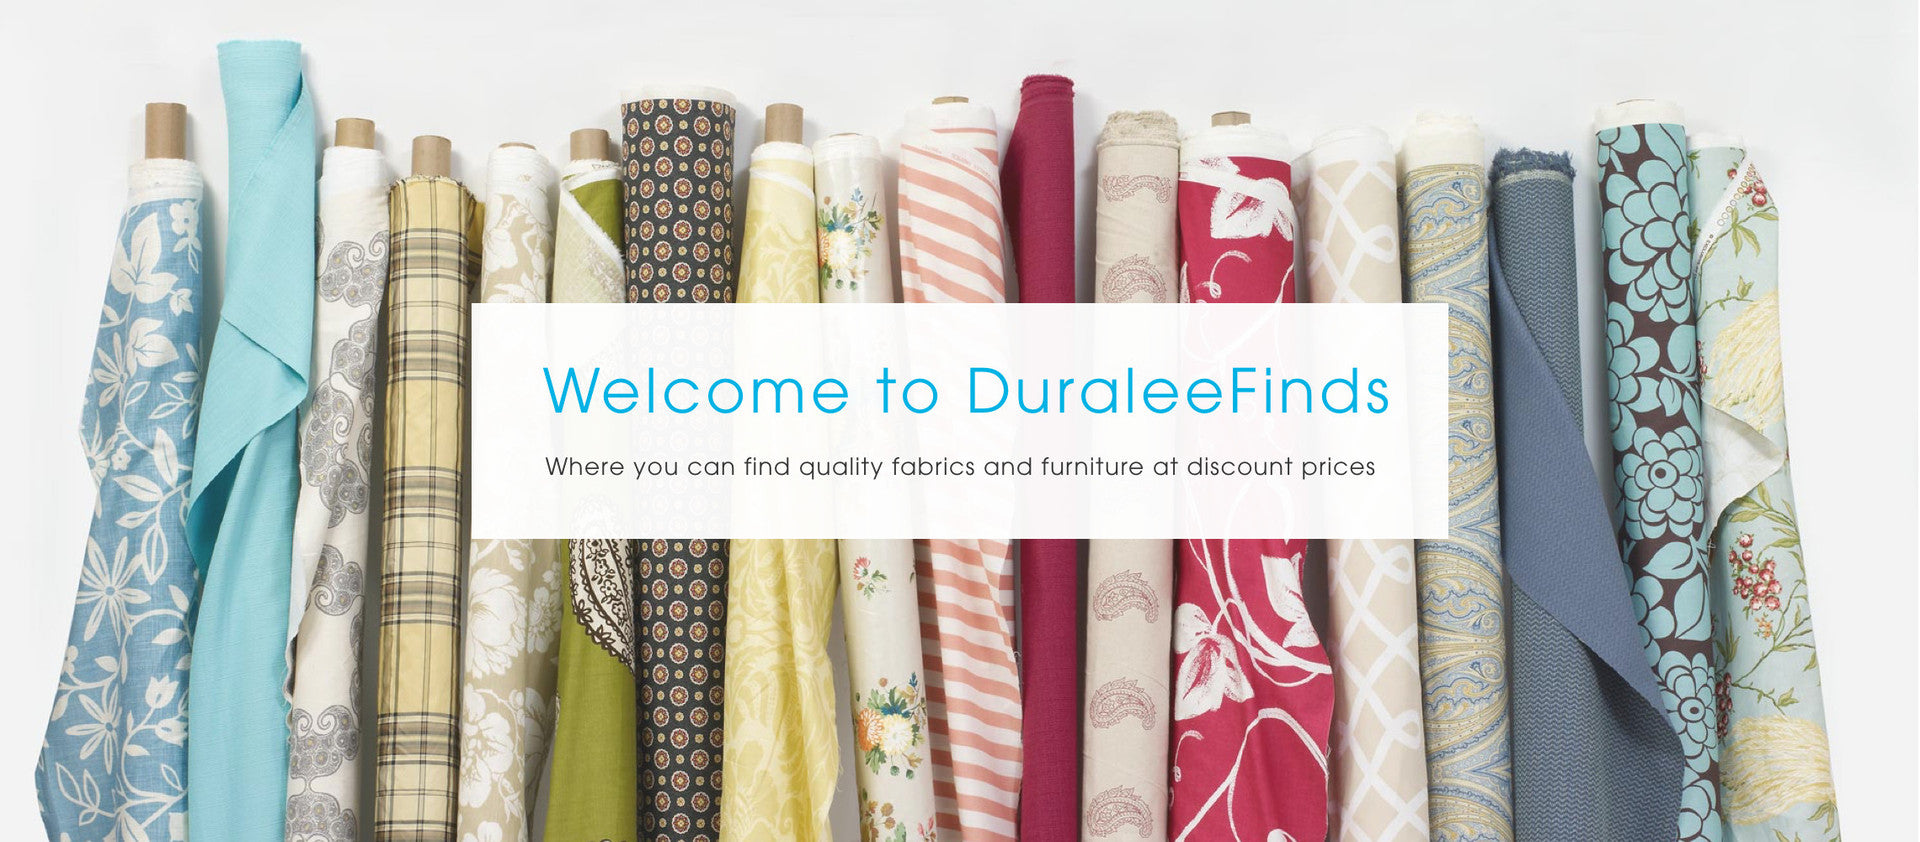 DuraleeFinds header image of fabric rolls